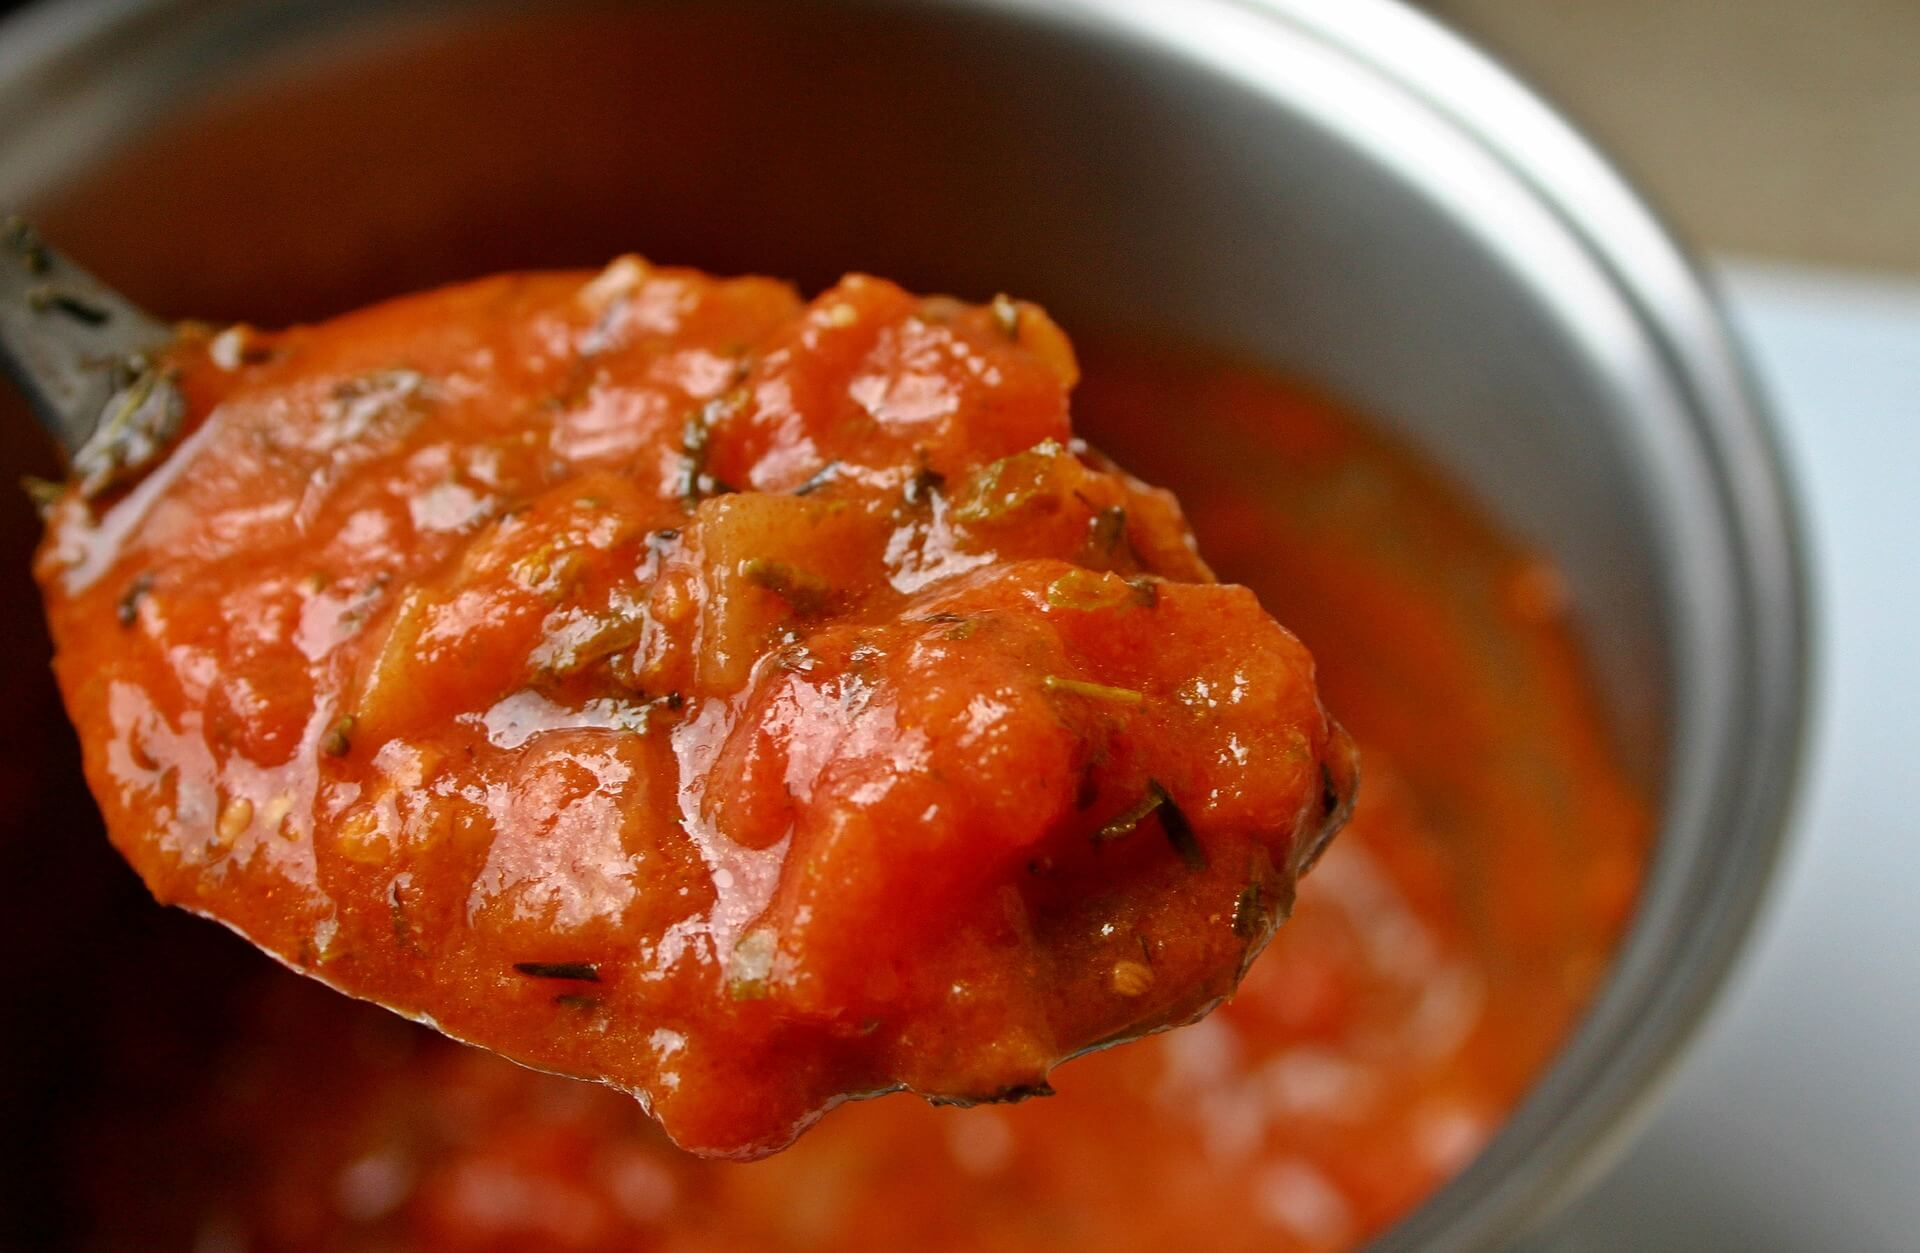 How to Make Tomato Sauce at Home with Fresh Produce